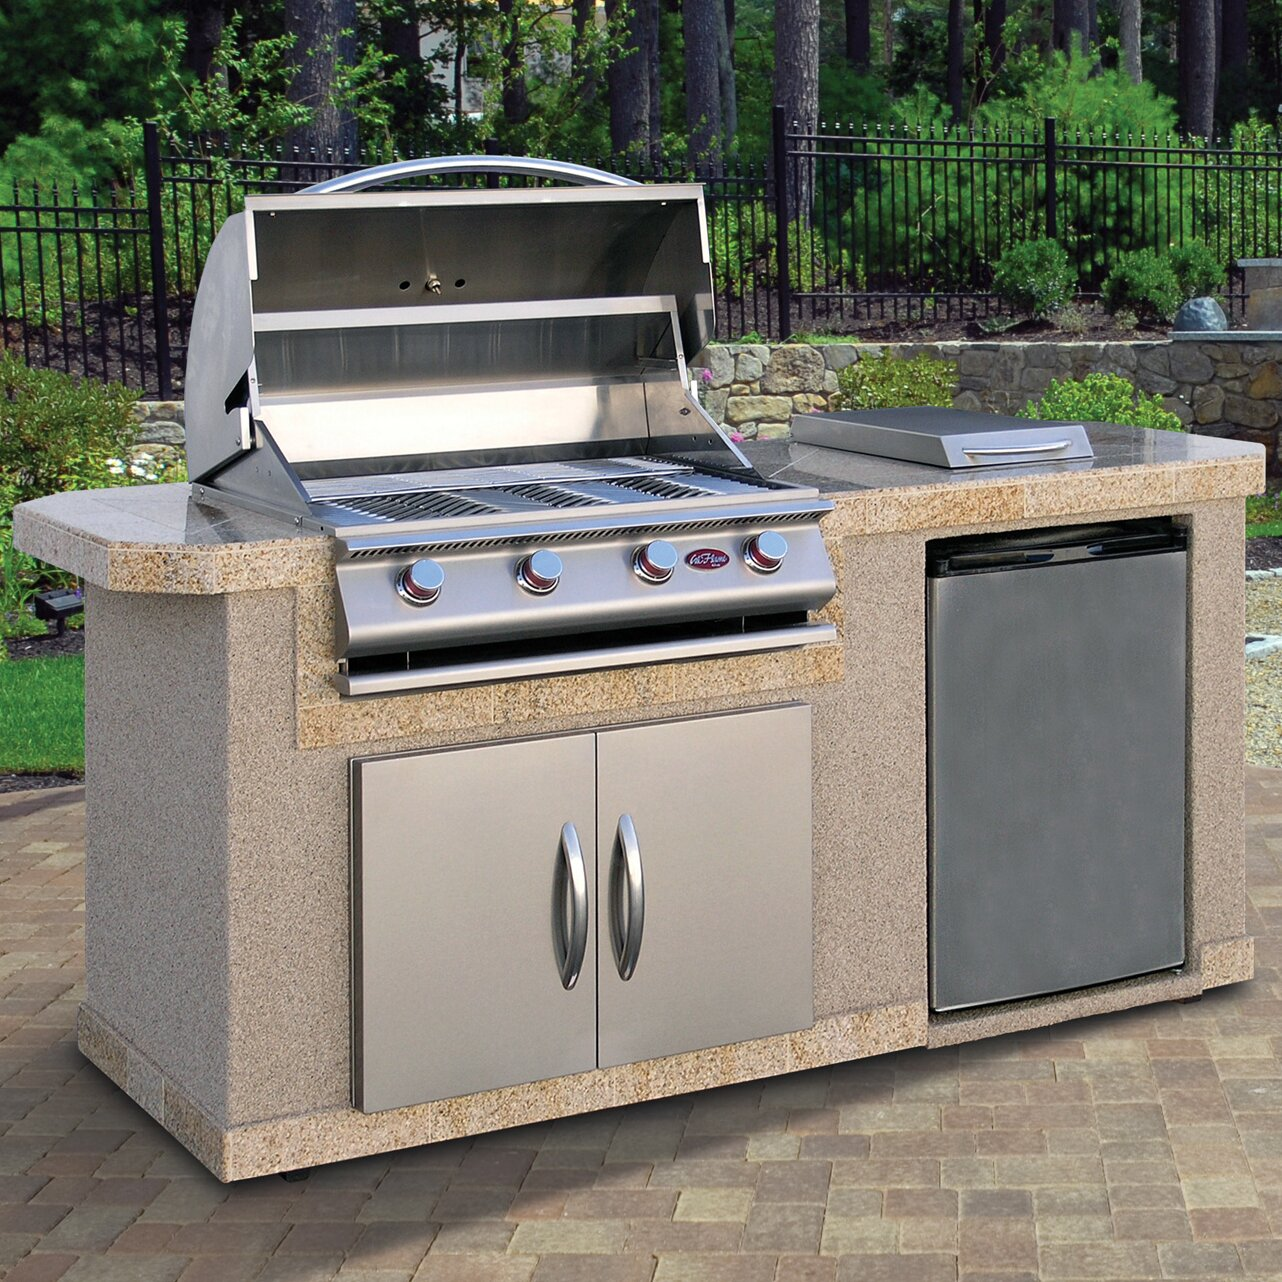 CalFlame Outdoor Kitchen Islands 4-Burner Built-In Propane